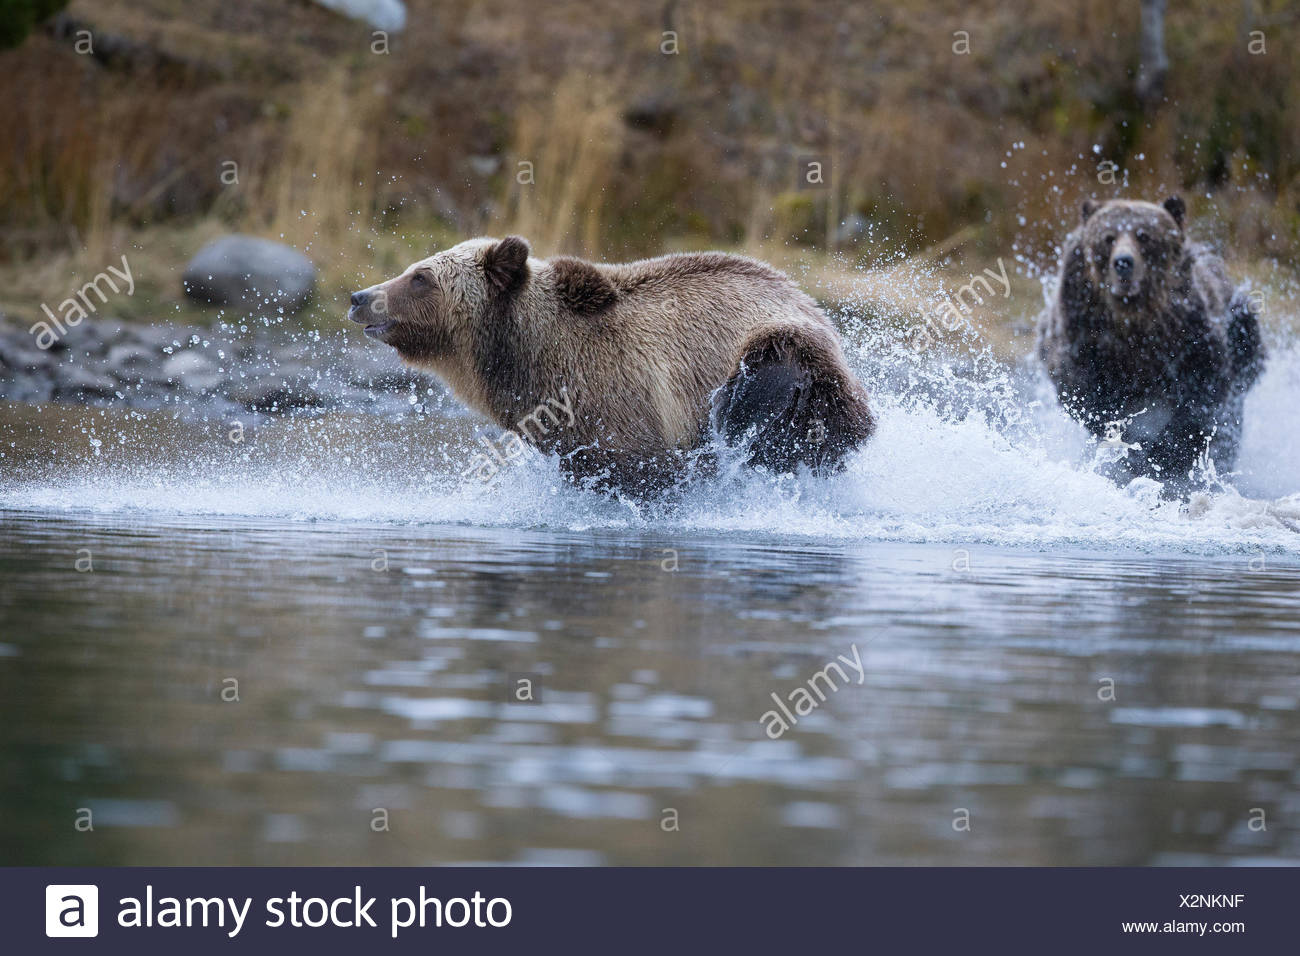 Grizzly bear (Ursus arctos horribilis), female chasing subdault (lighter cloloured) away from her cubs (off camera), Chilcotin Region, British Columbia, Canada. - Stock Image